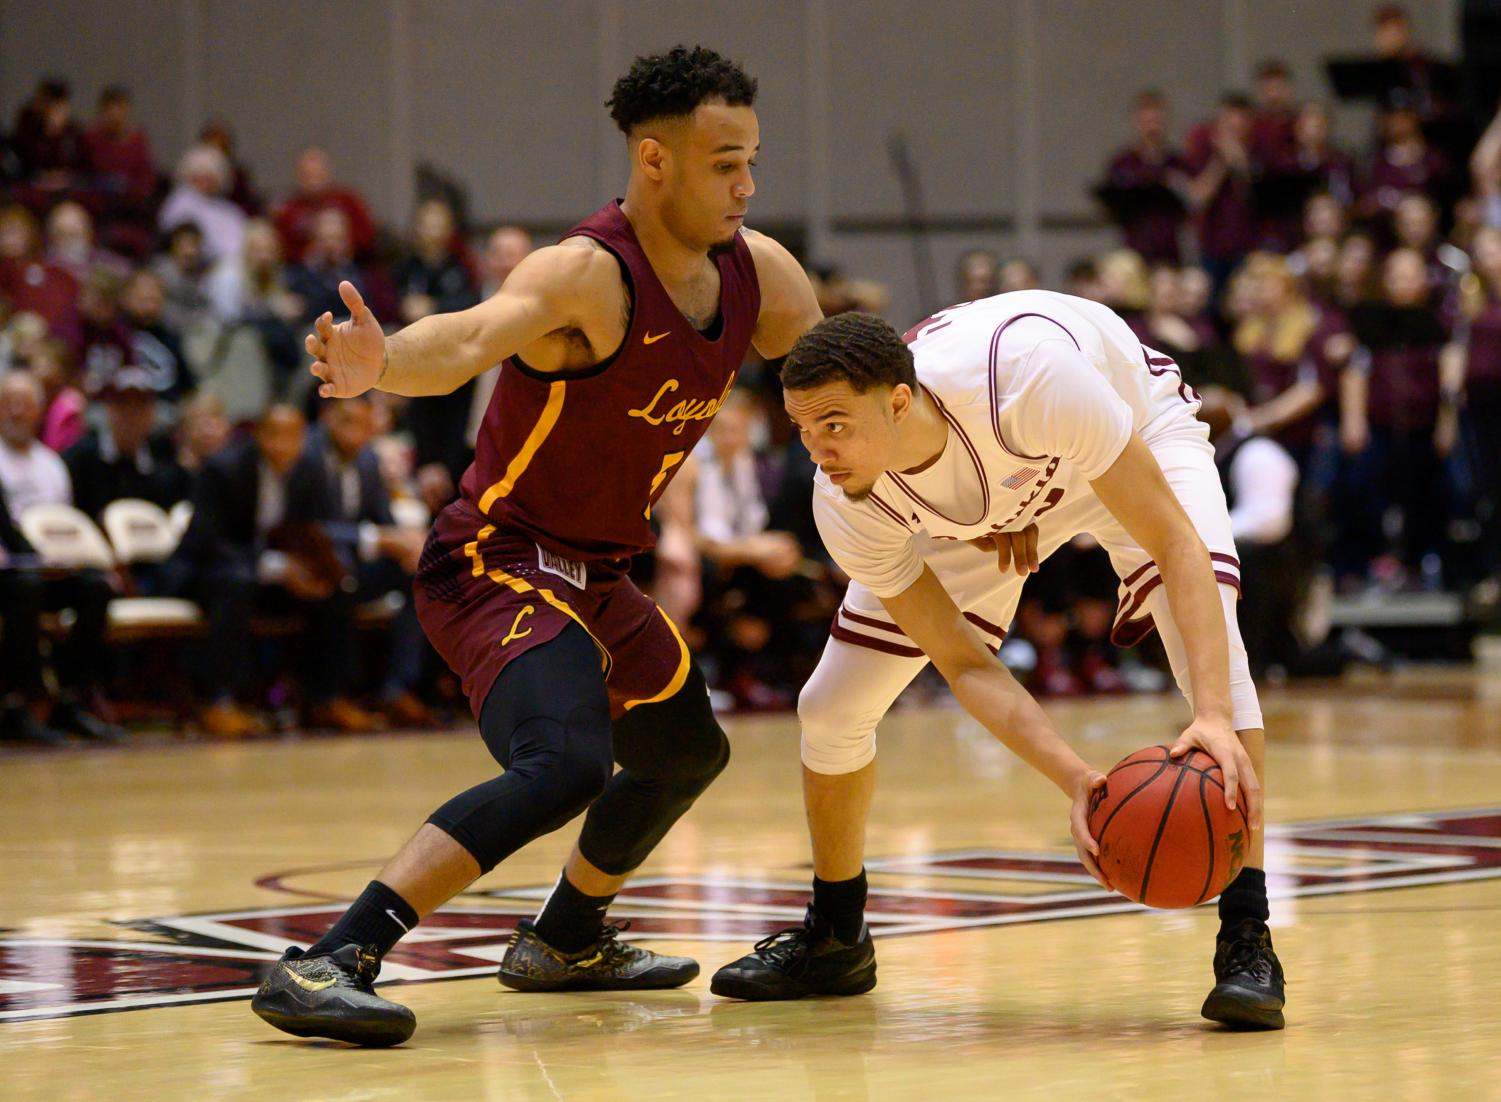 Southern+Illinois+Salukis+guard+Marcus+Bartley+attempts+to+get+past+Loyola+Ramblers+guard+Marques+Townes+on+Sunday%2C+Feb.+24%2C+2019%2C+during+a+matchup+between+the+Southern+Illinois+Salukis+and+the+Loyola+Ramblers+at+SIU+Arena.